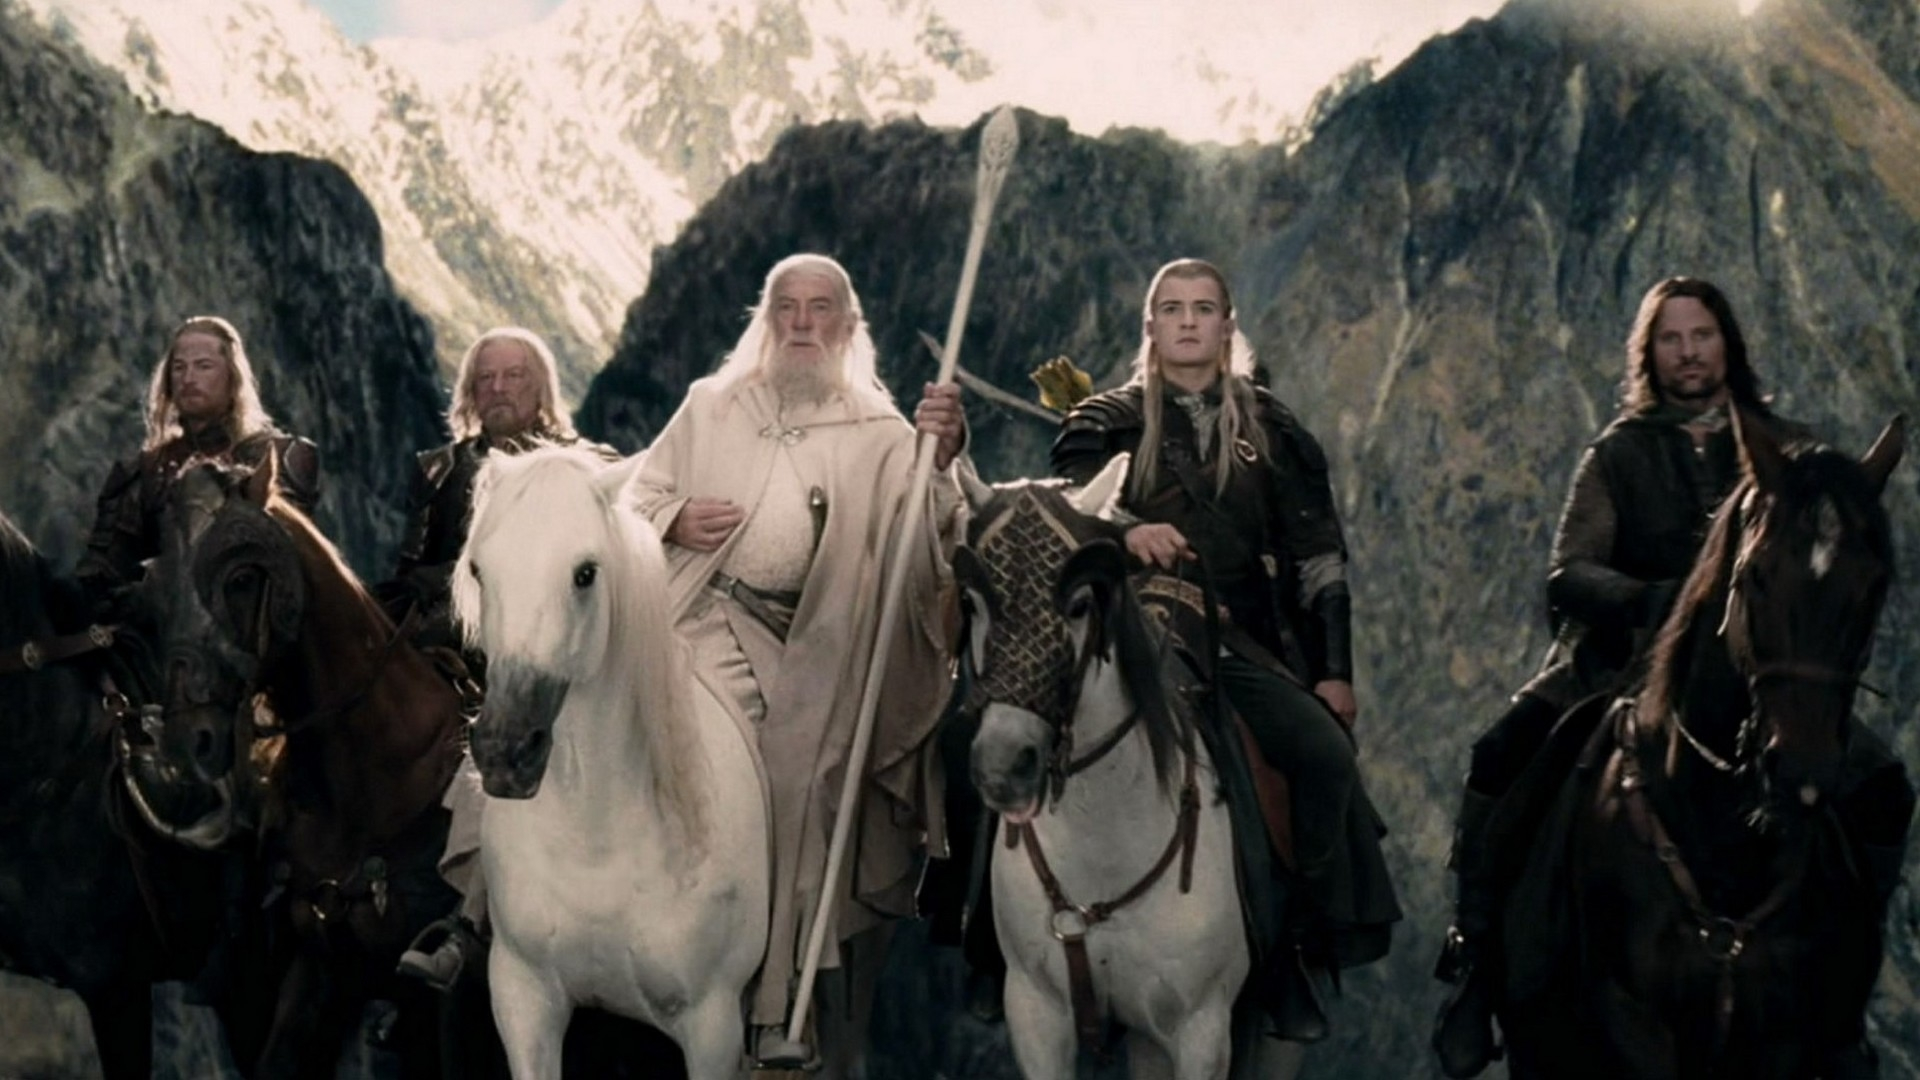 Amazon Could Rival PUBG With Free 'Lord of the Rings' PC Game